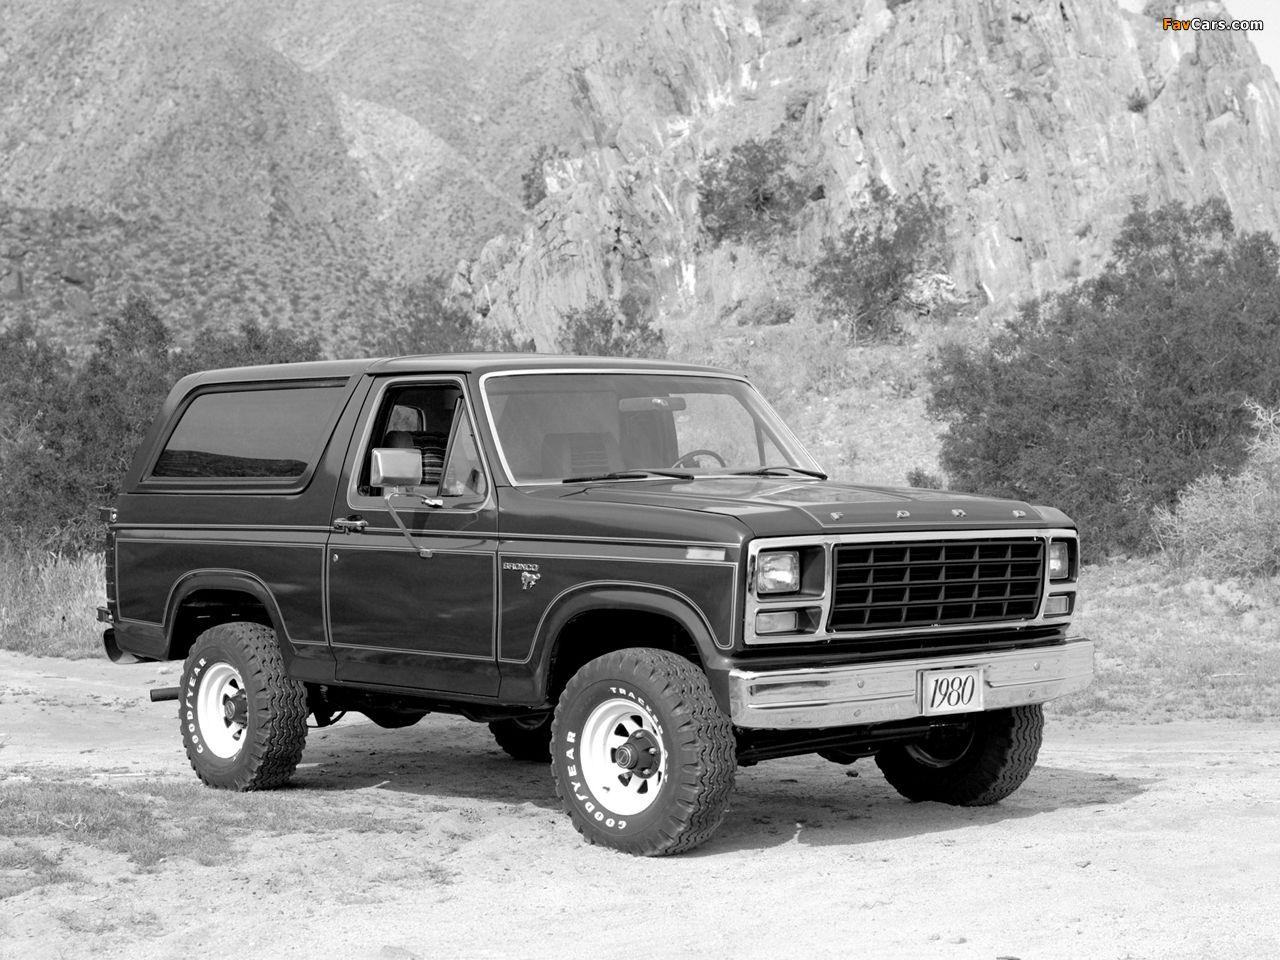 Ford Bronco Wallpapers 16 - 1280 X 960 | stmed.net